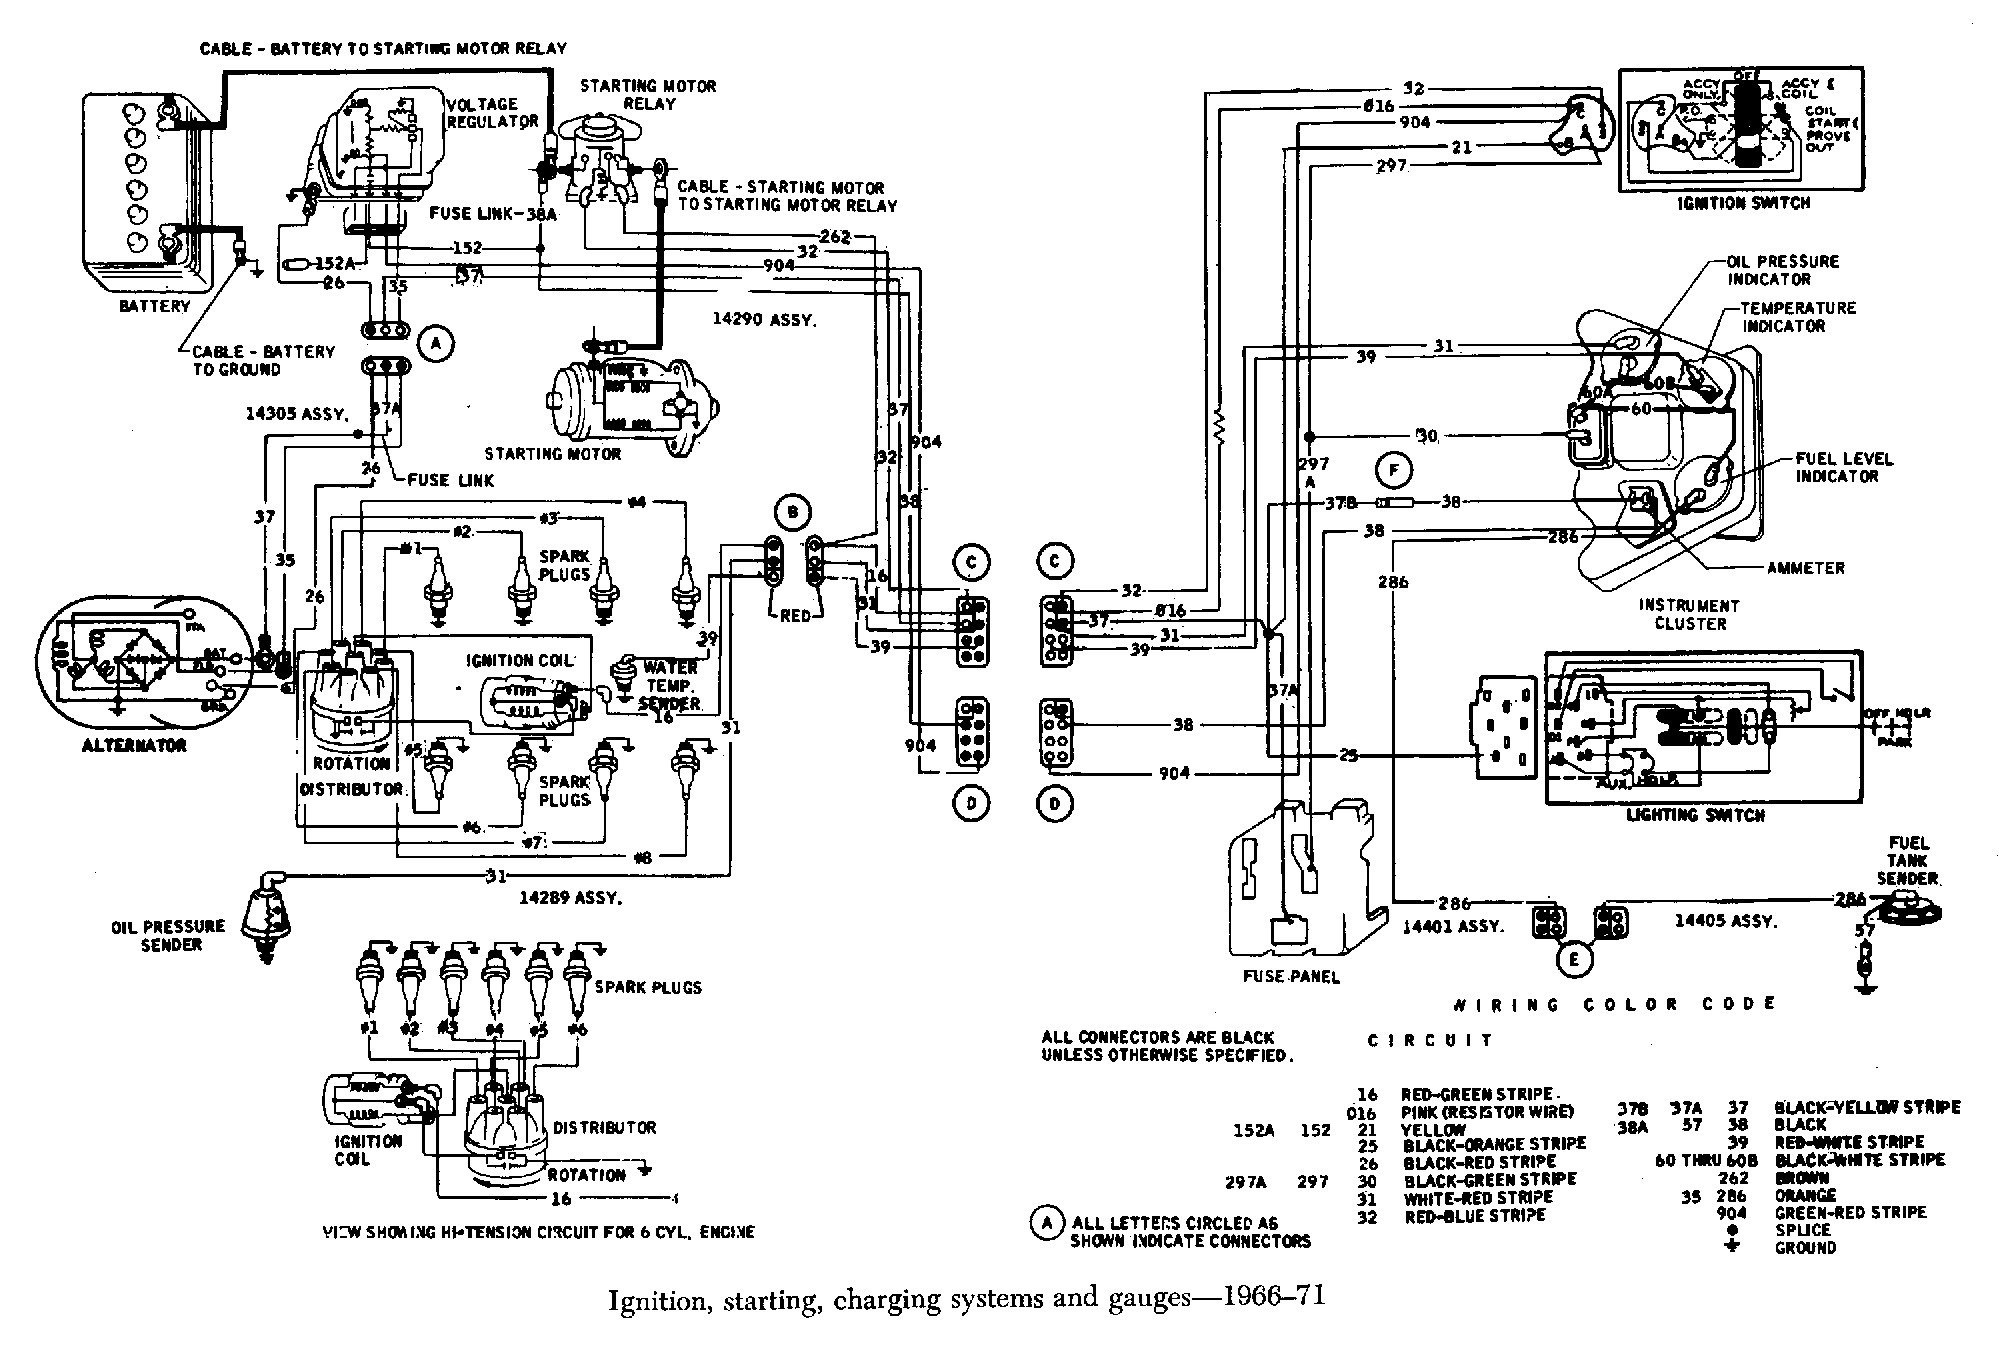 Swell Wrg 7297 Coil Wiring Diagram Ignition Wiring Cloud Grayisramohammedshrineorg